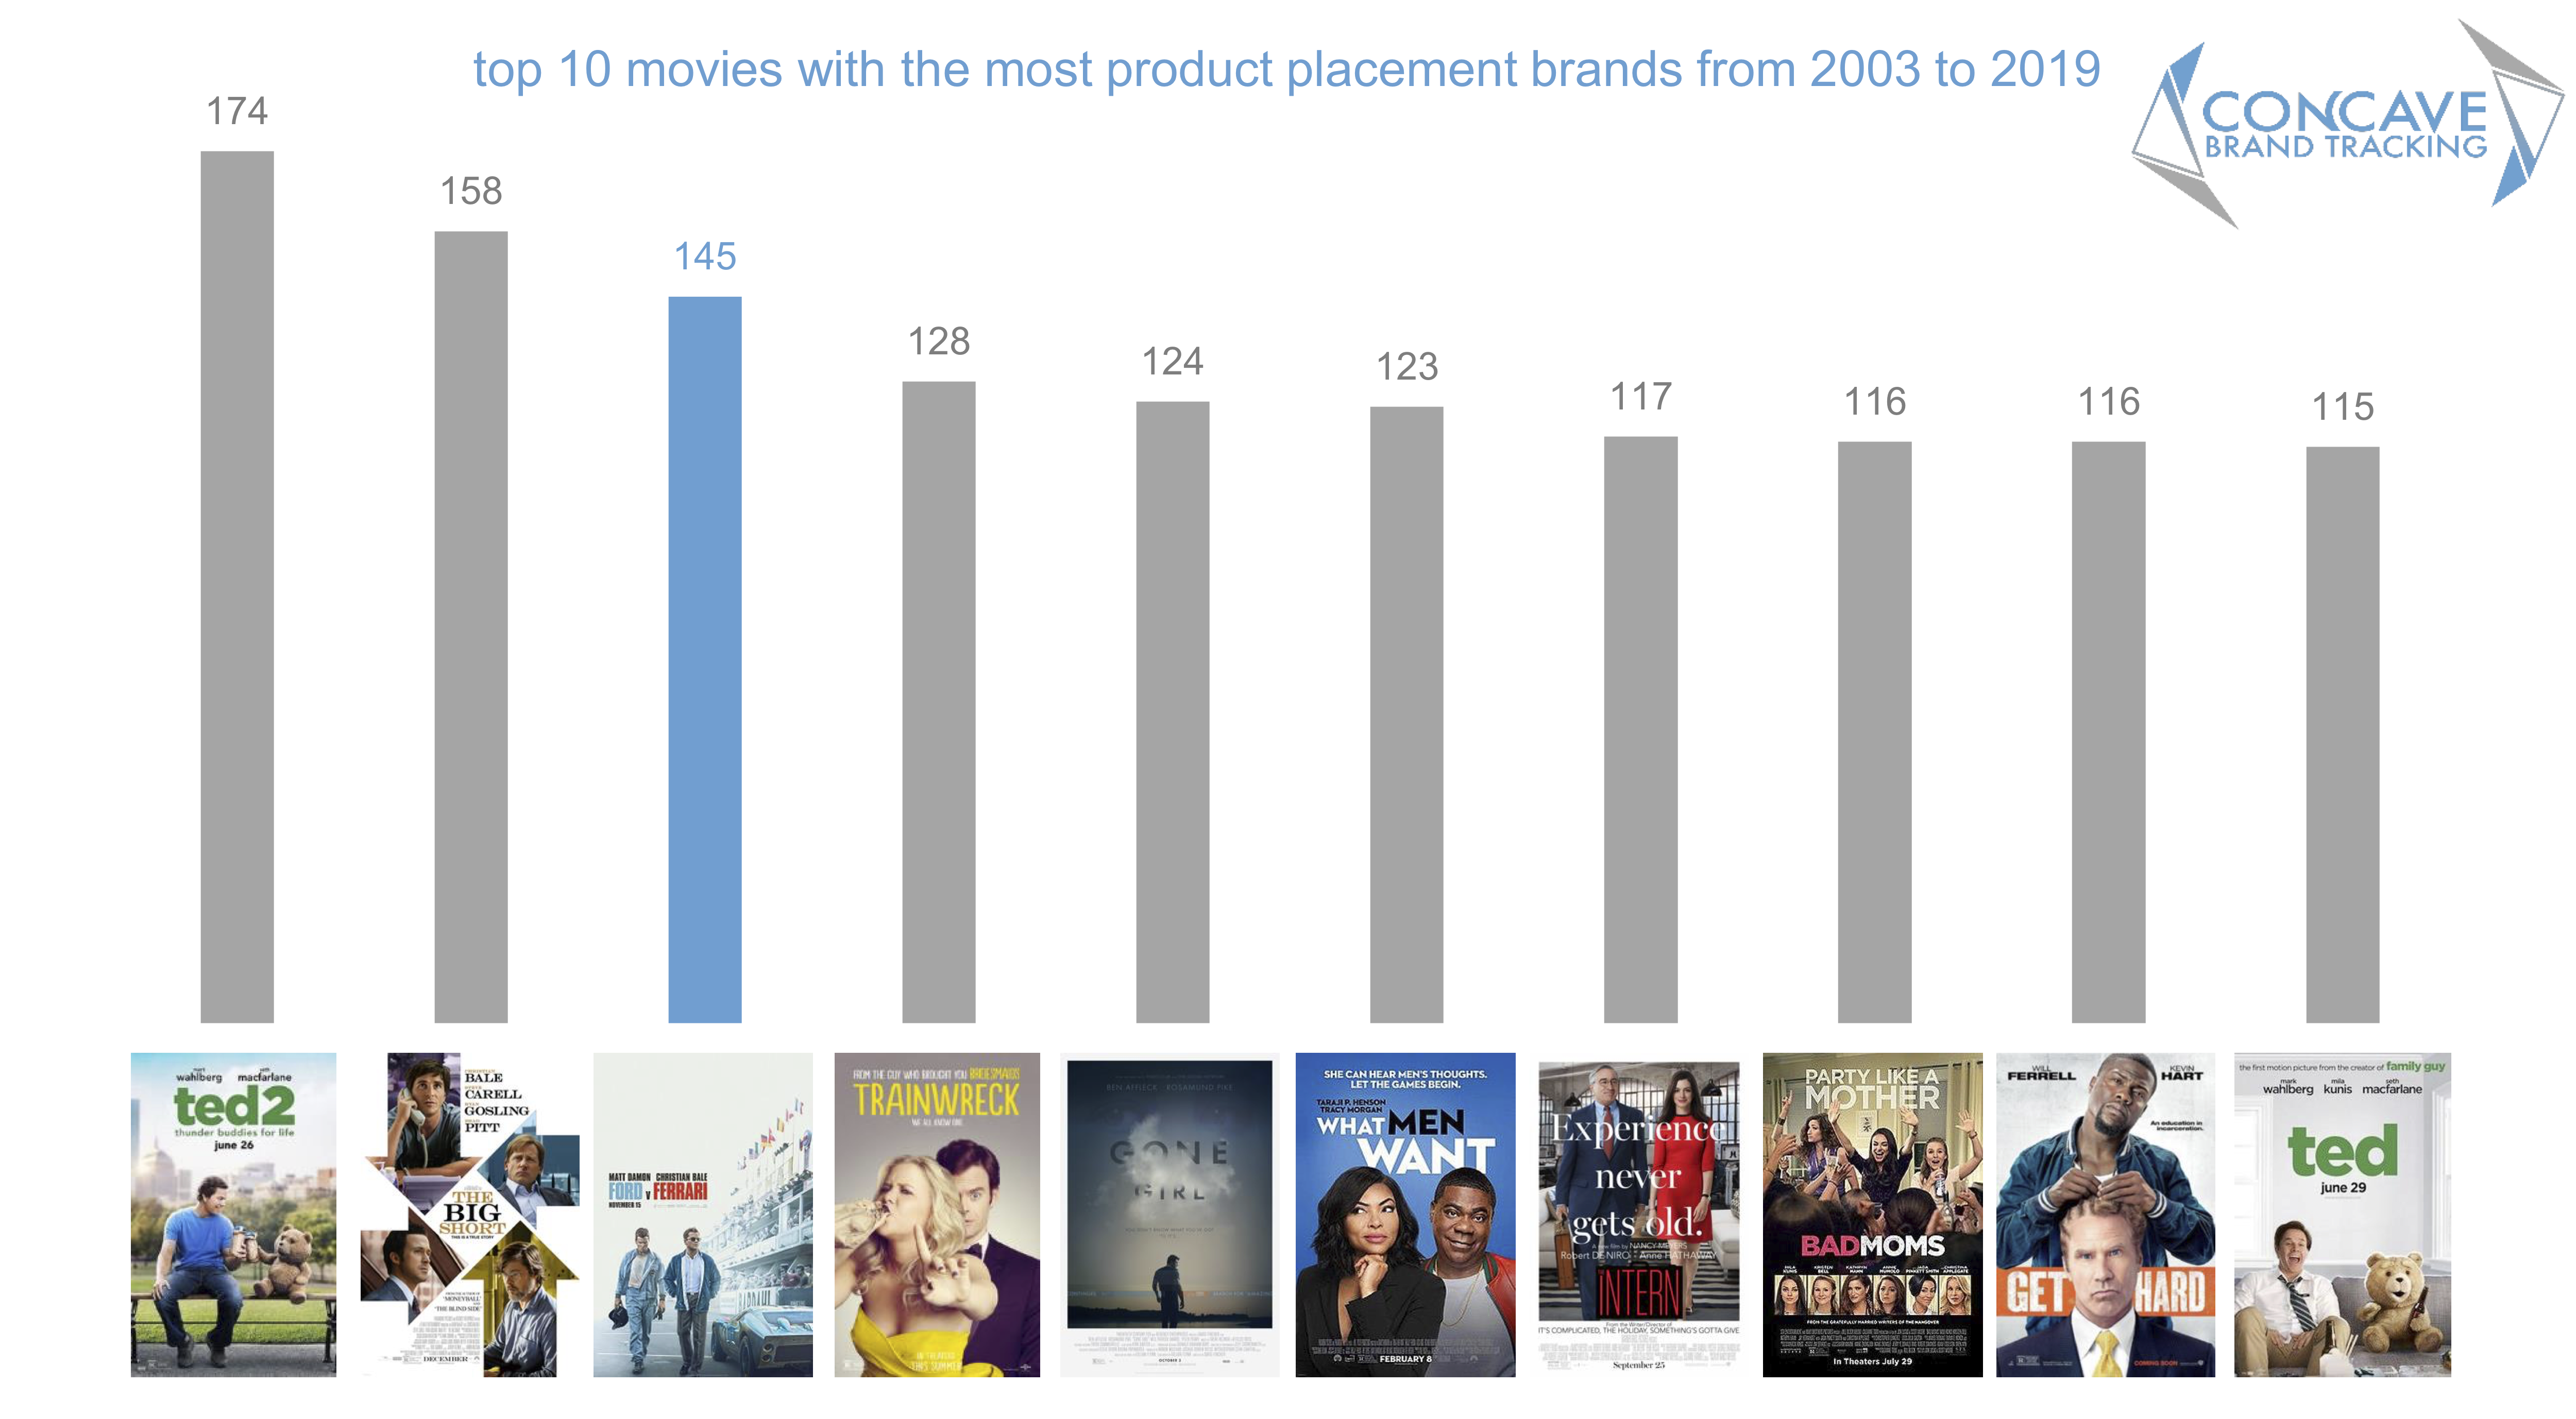 Concave brand tracking, product placement, brands, movies, entertainment marketing, branded integration, integration marketing, analysis, valuation, metrics, measurement, concave, Oscars, 2020, academy awards, Ford V Ferrari, ford, Ferrari, Christian Bale, Matt Damon, brand visibility, value